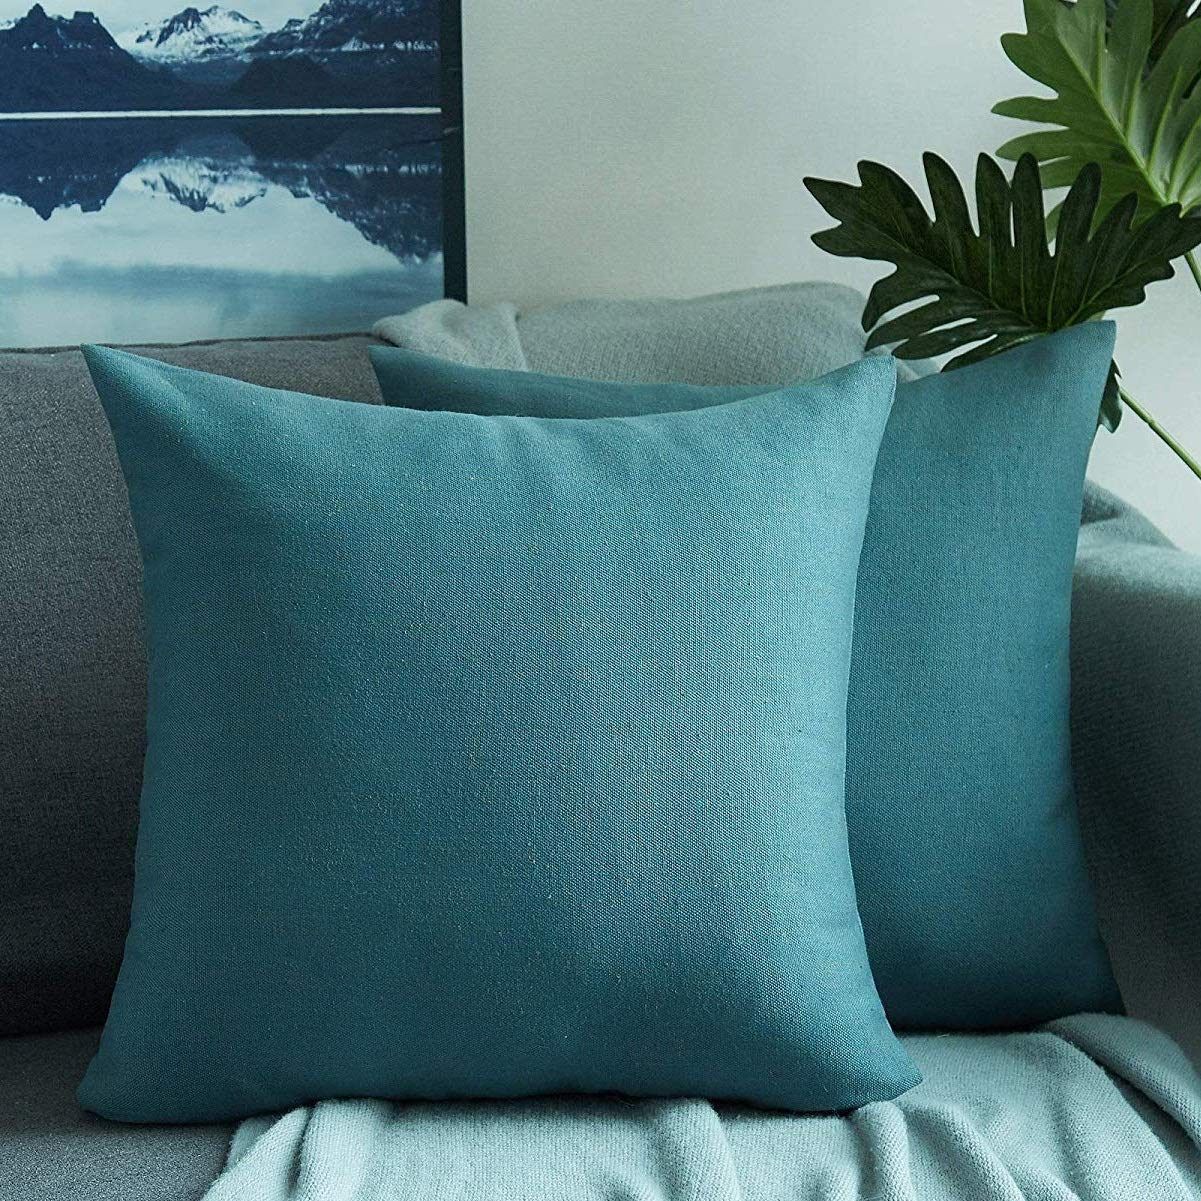 Foindtower Set of 2 Cotton Linen Square Decorative Throw Pillow Cover Cushion Case for Livingroom Couch Sofa Bed Home Decor Car 18 x 18 Inch 45 x 45 cm Straw Beige